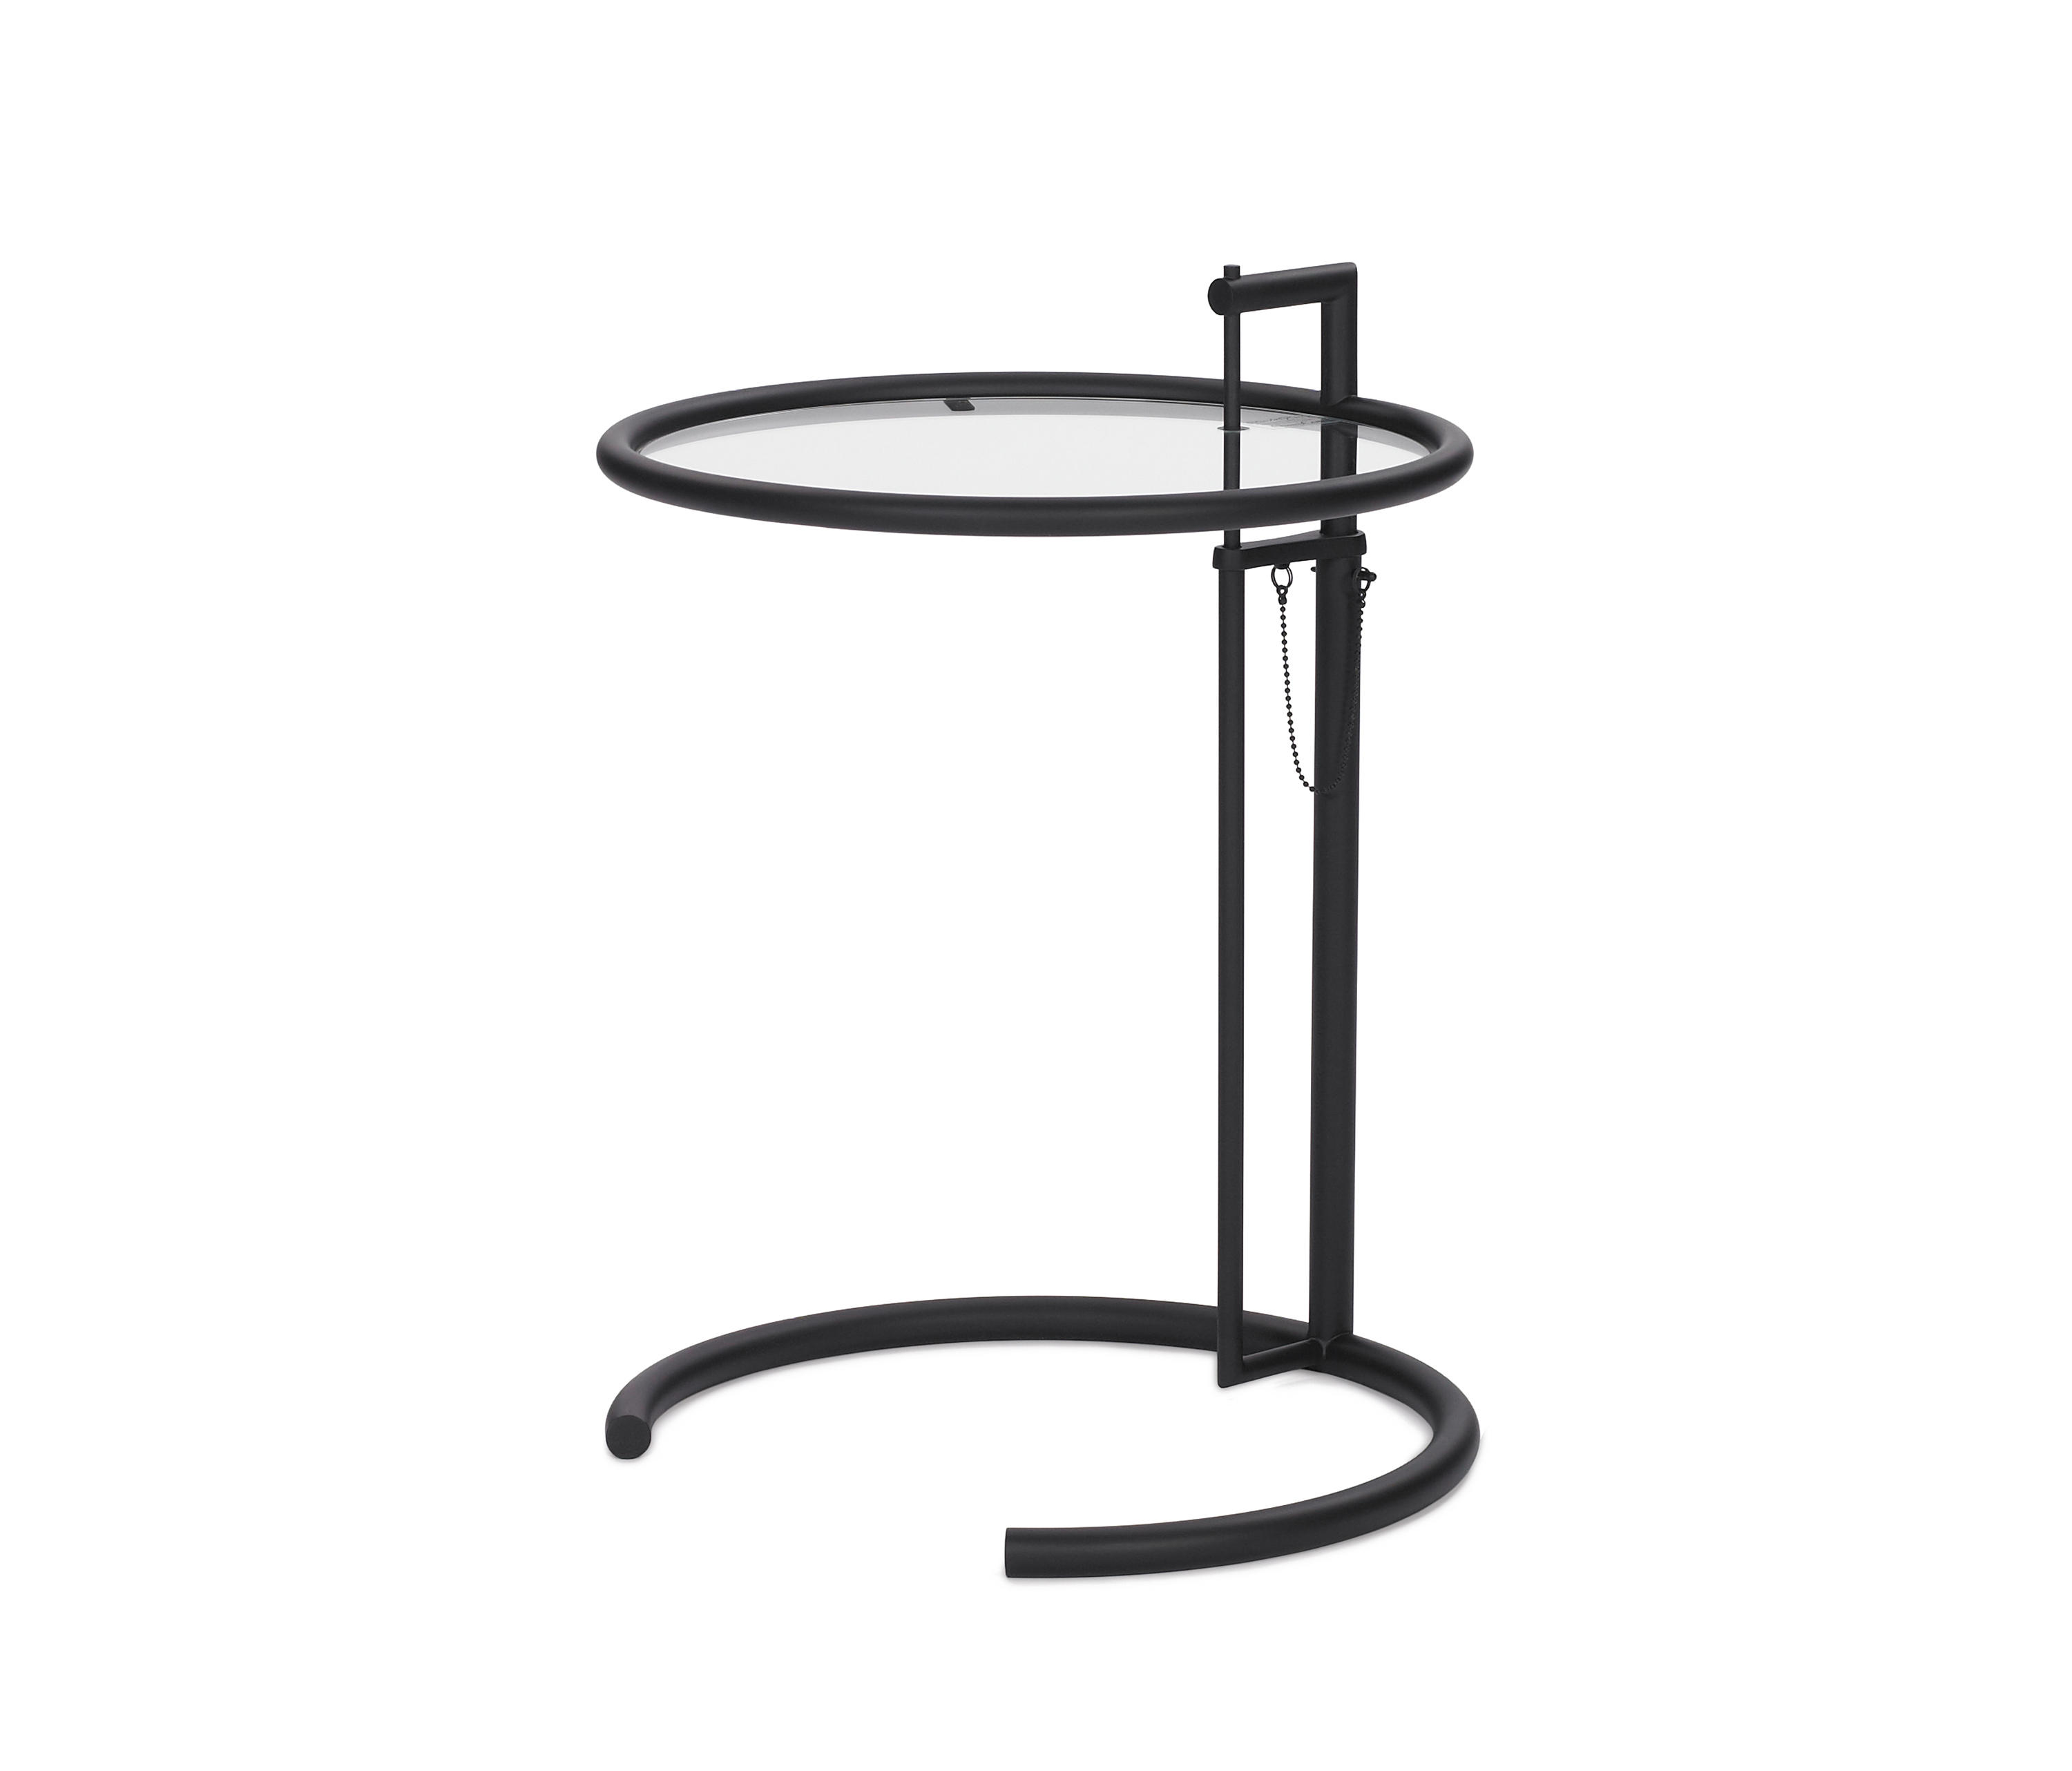 adjustable table e 1027 black night stands from classicon architonic. Black Bedroom Furniture Sets. Home Design Ideas